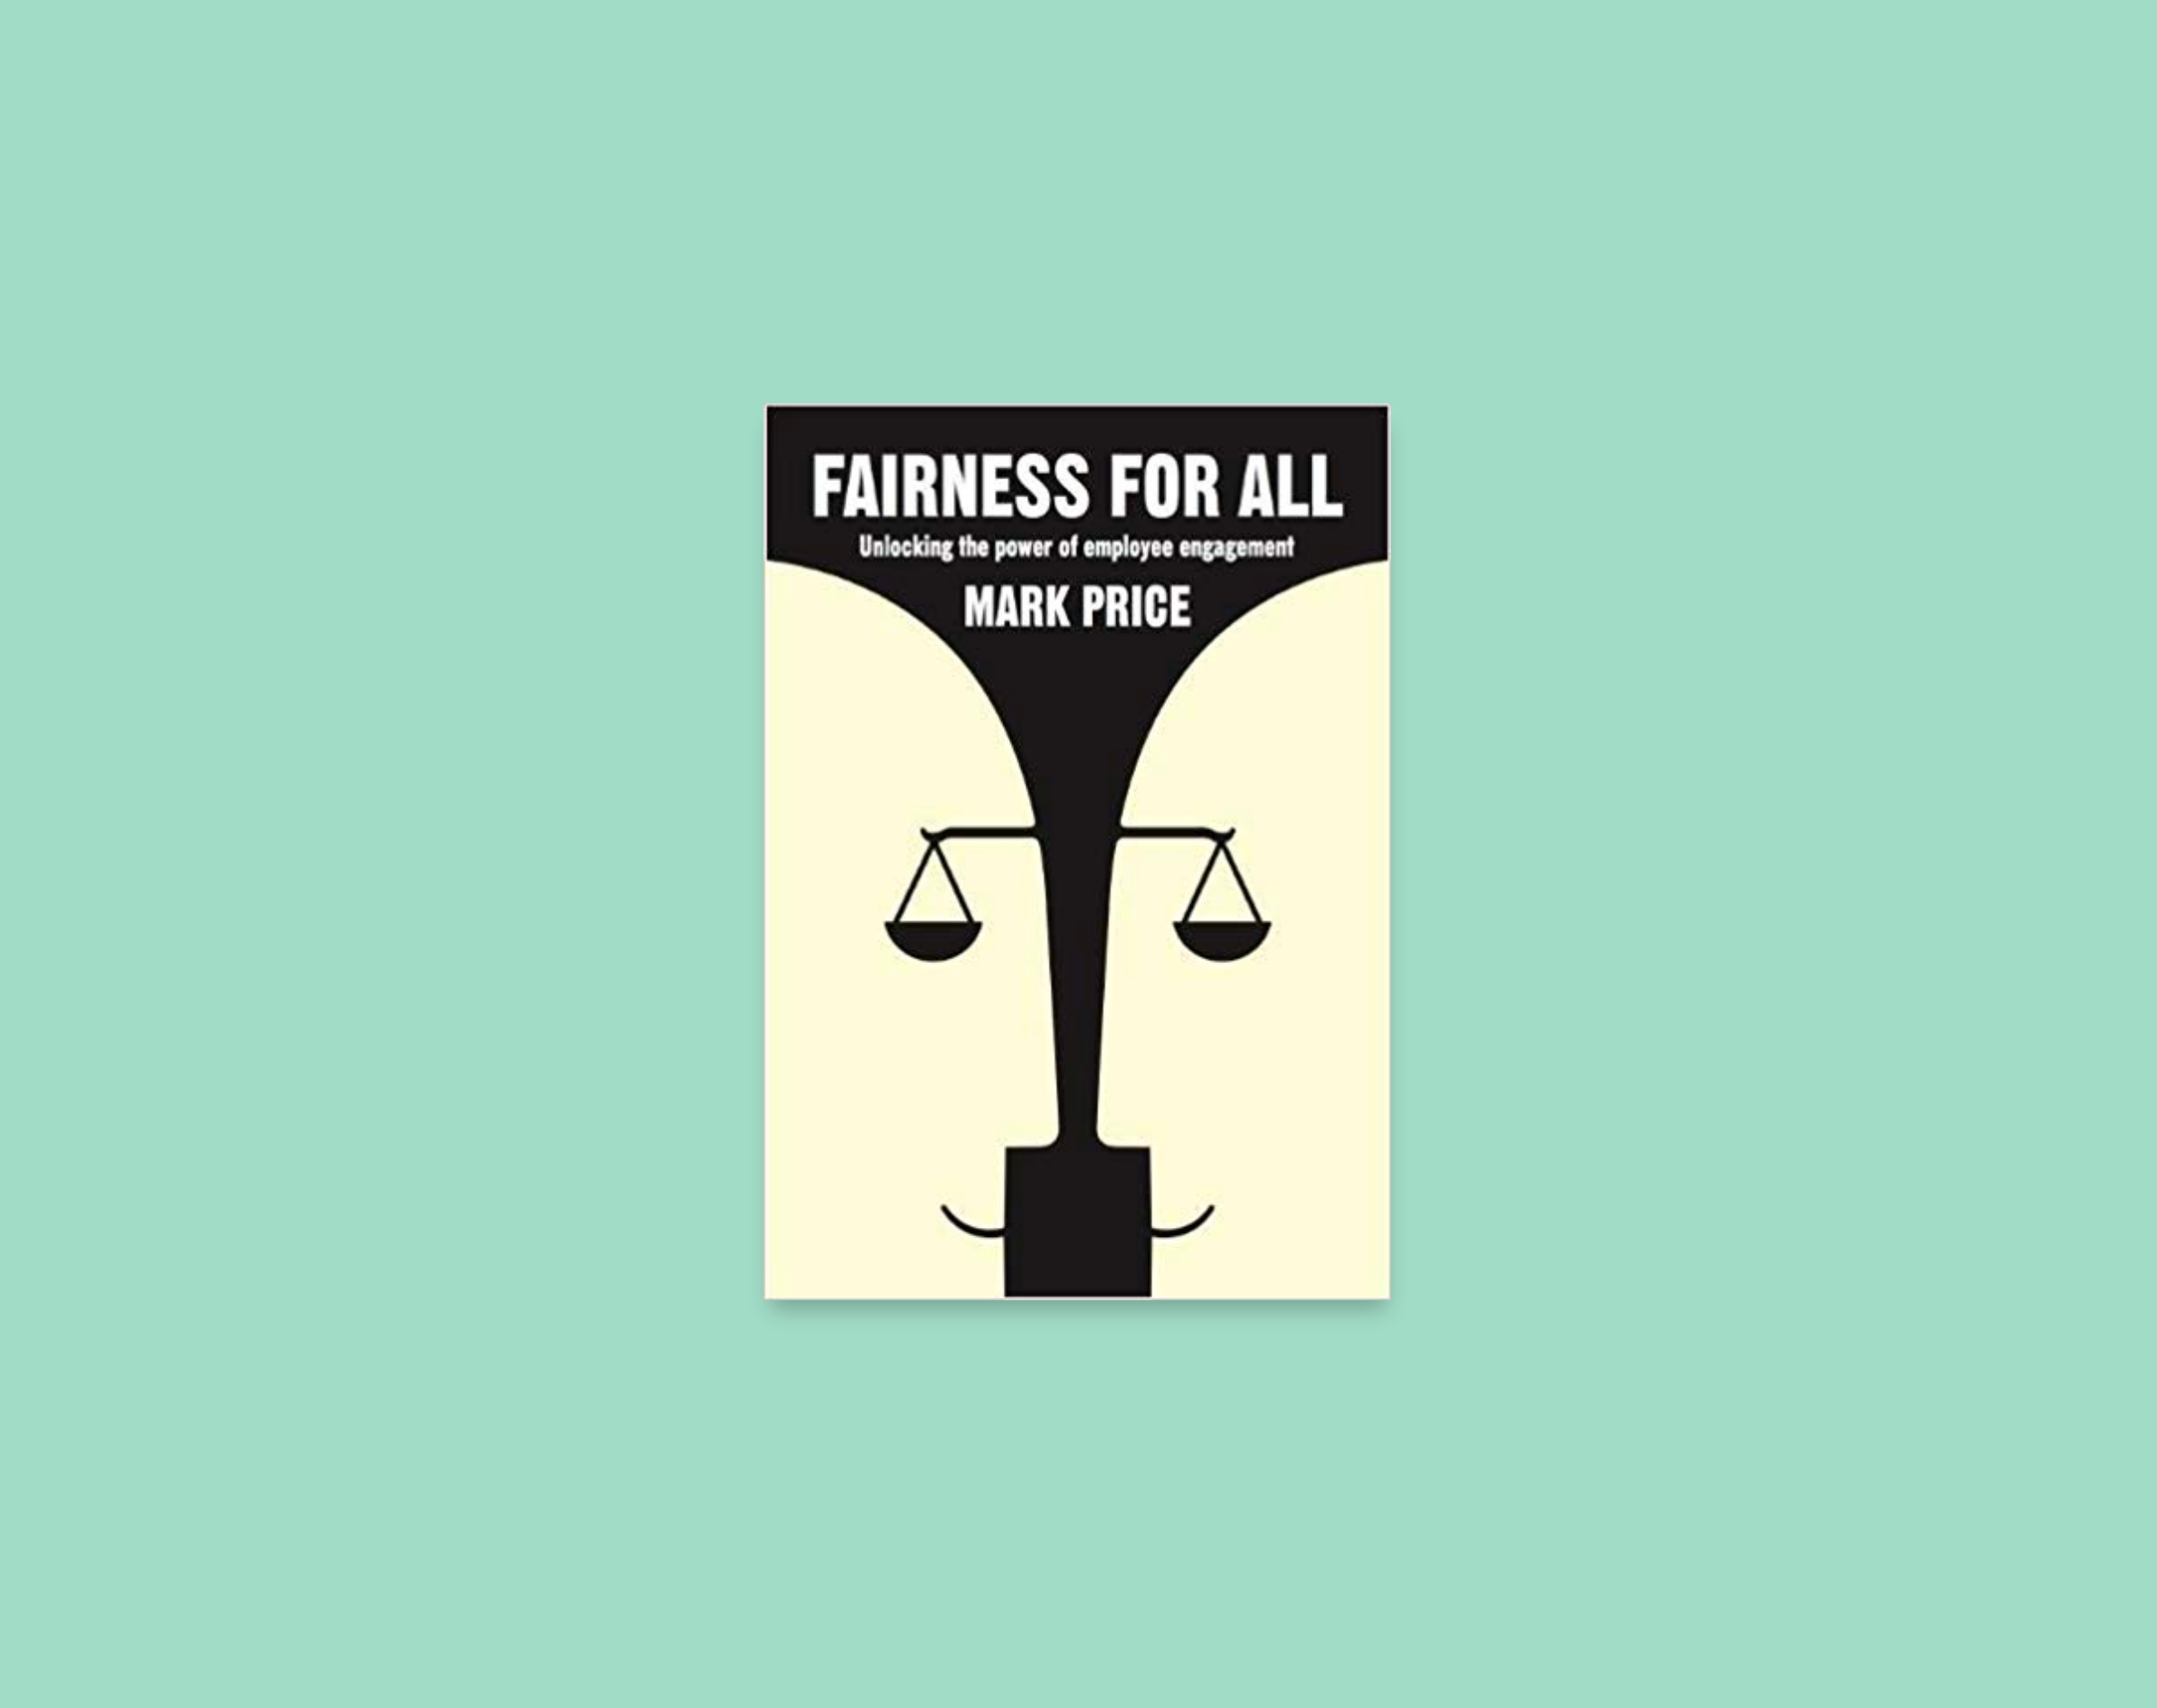 Fairness for all book by Mark Price